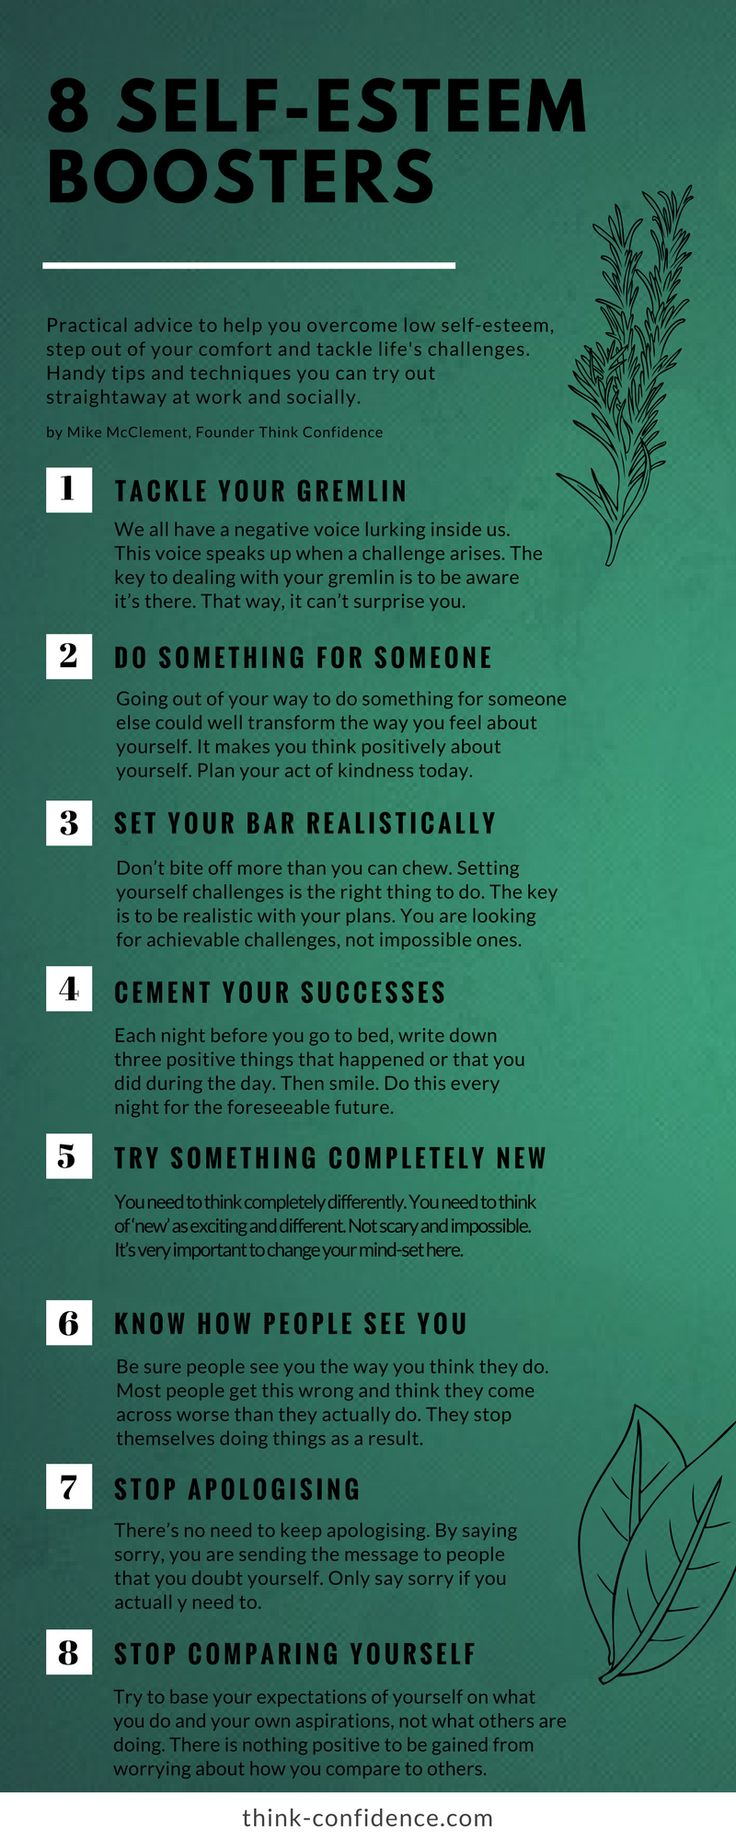 8 strategies for overcoming self-doubt and building self-esteem #selfesteem #selfdoubt #tips